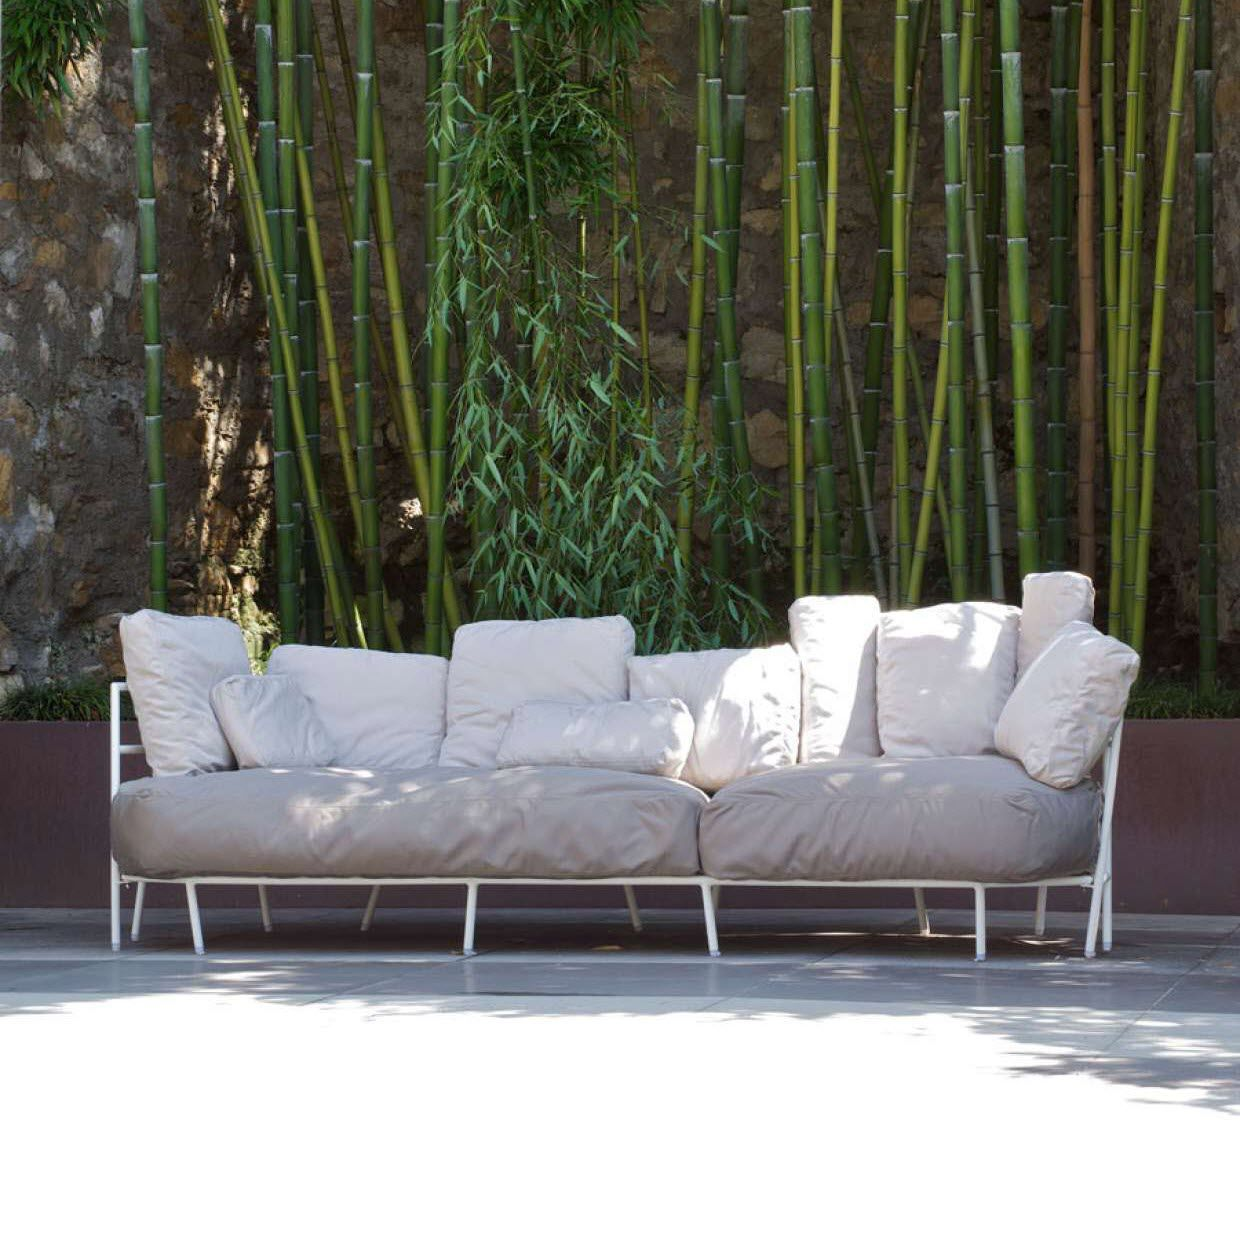 Garden Sofa Two Seater Contemporary Sofa Garden Acrylic Fabric Steel Dehors